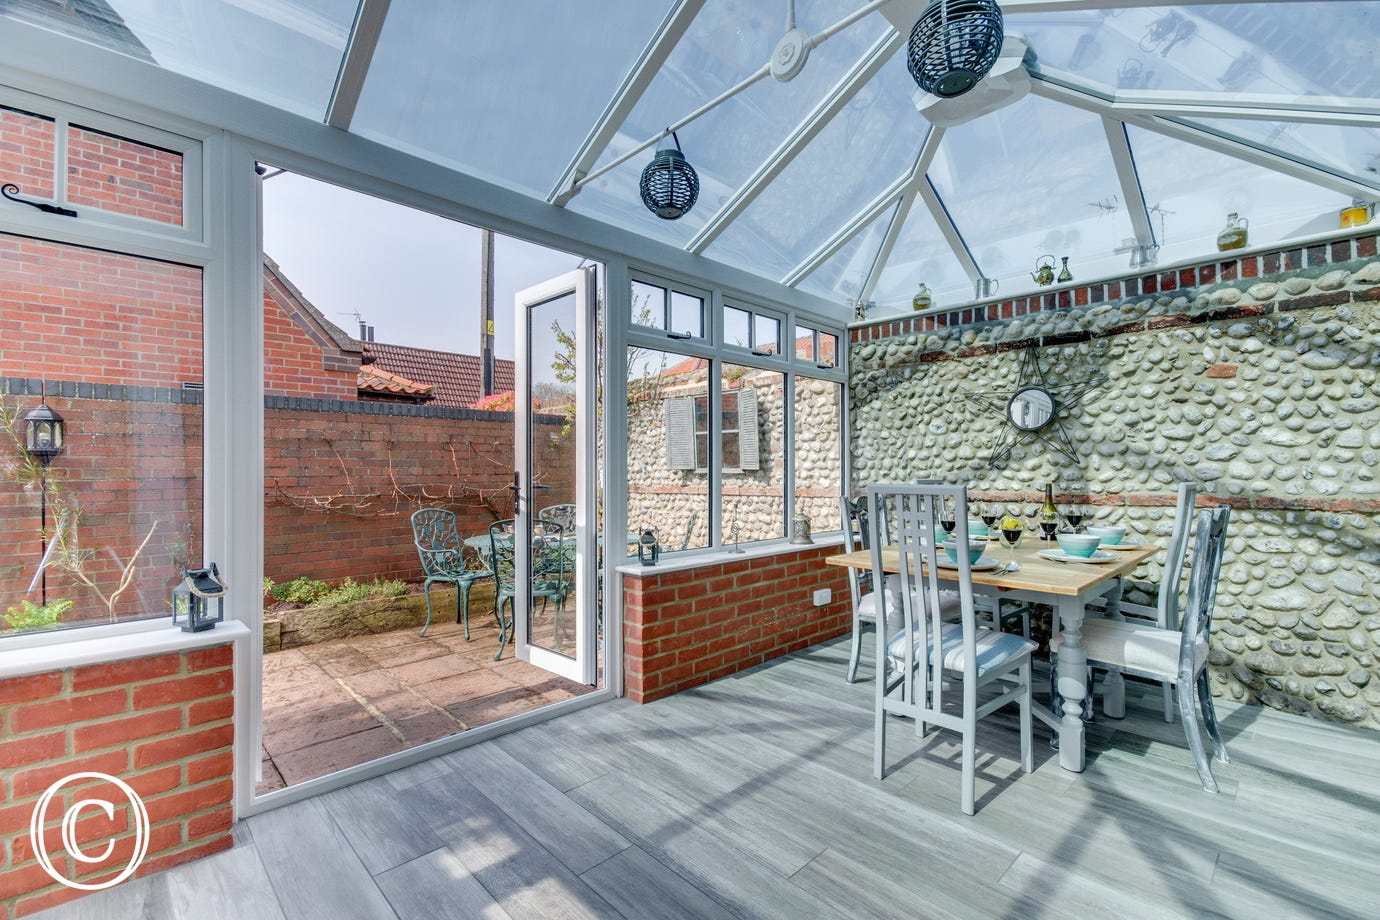 Conservatory with dining table & chairs